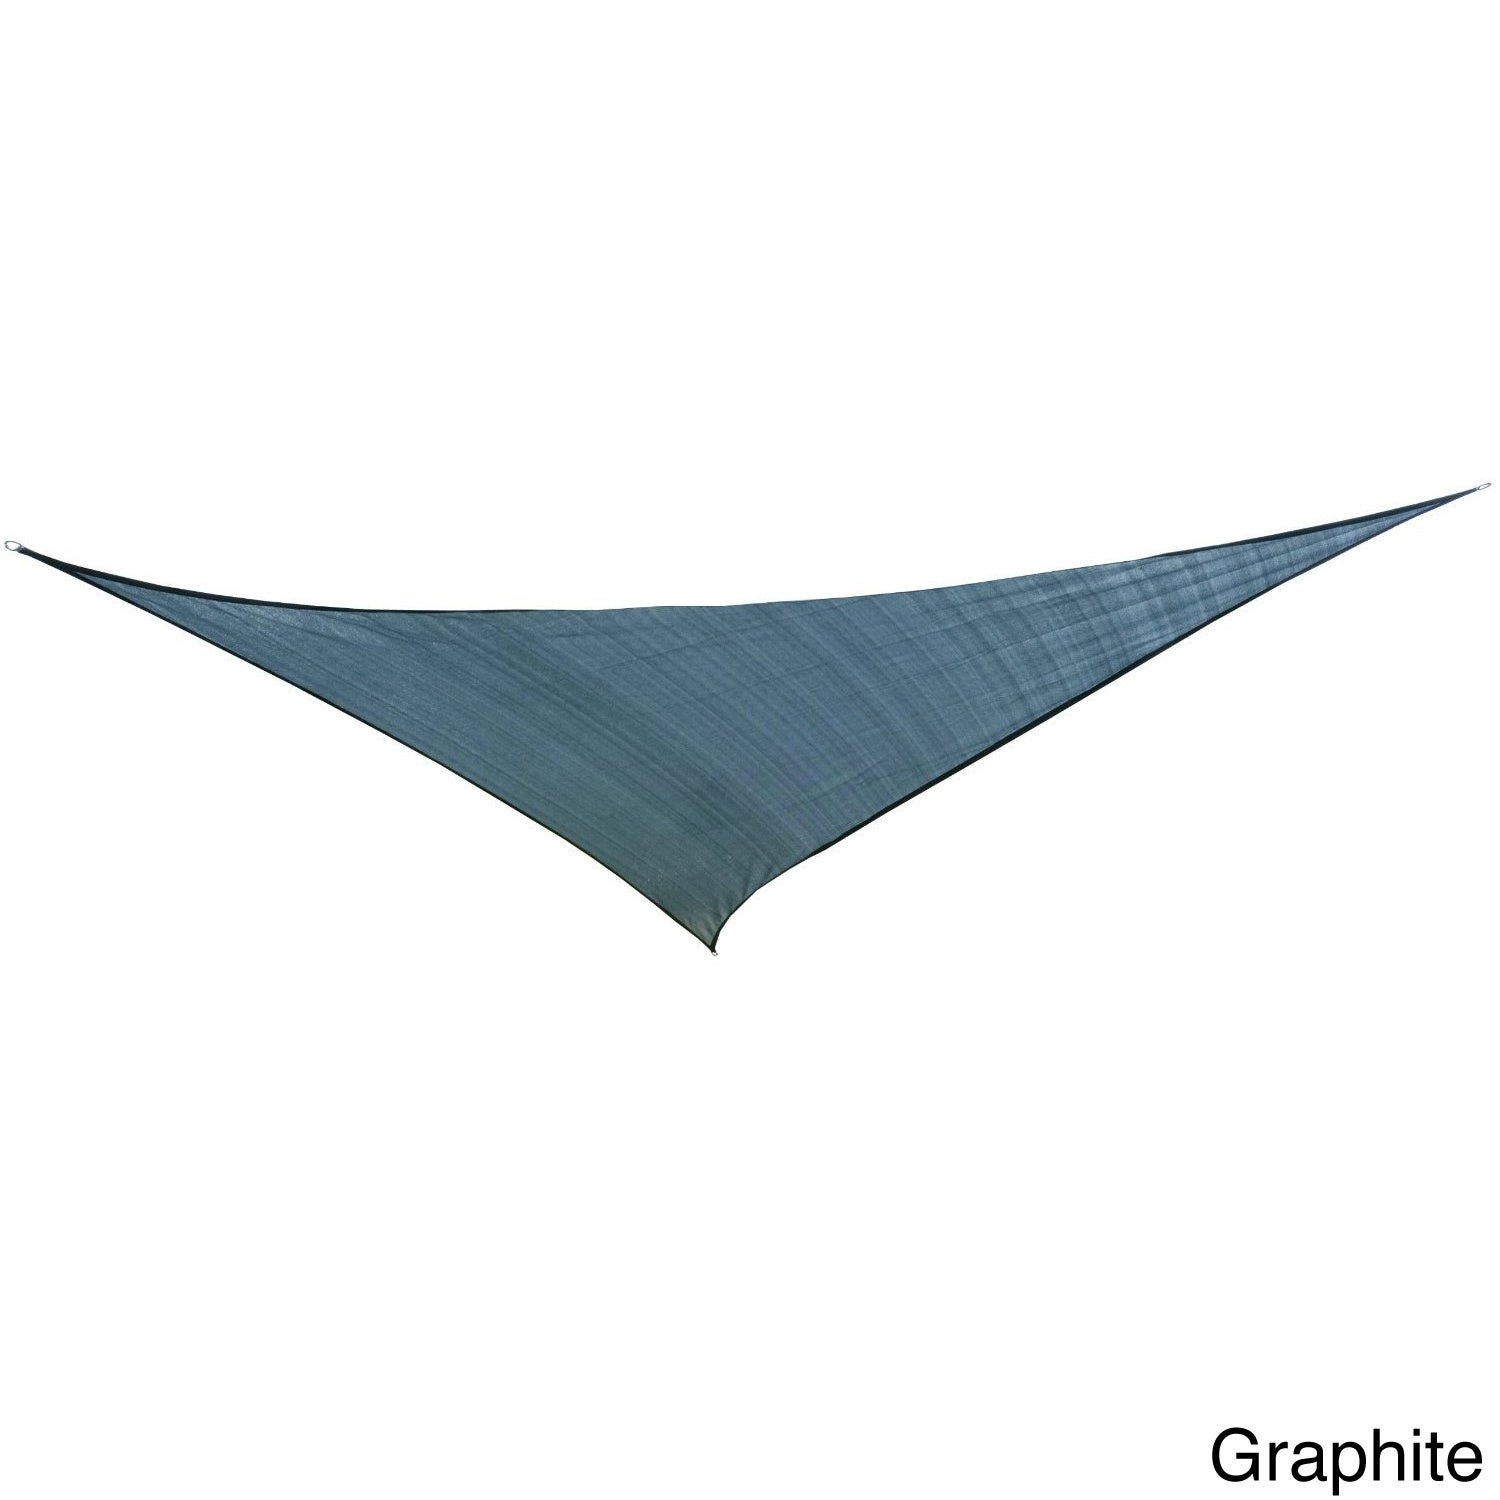 Cool Area Oversized Triangle Sun Shade Sail (16'5) with S...